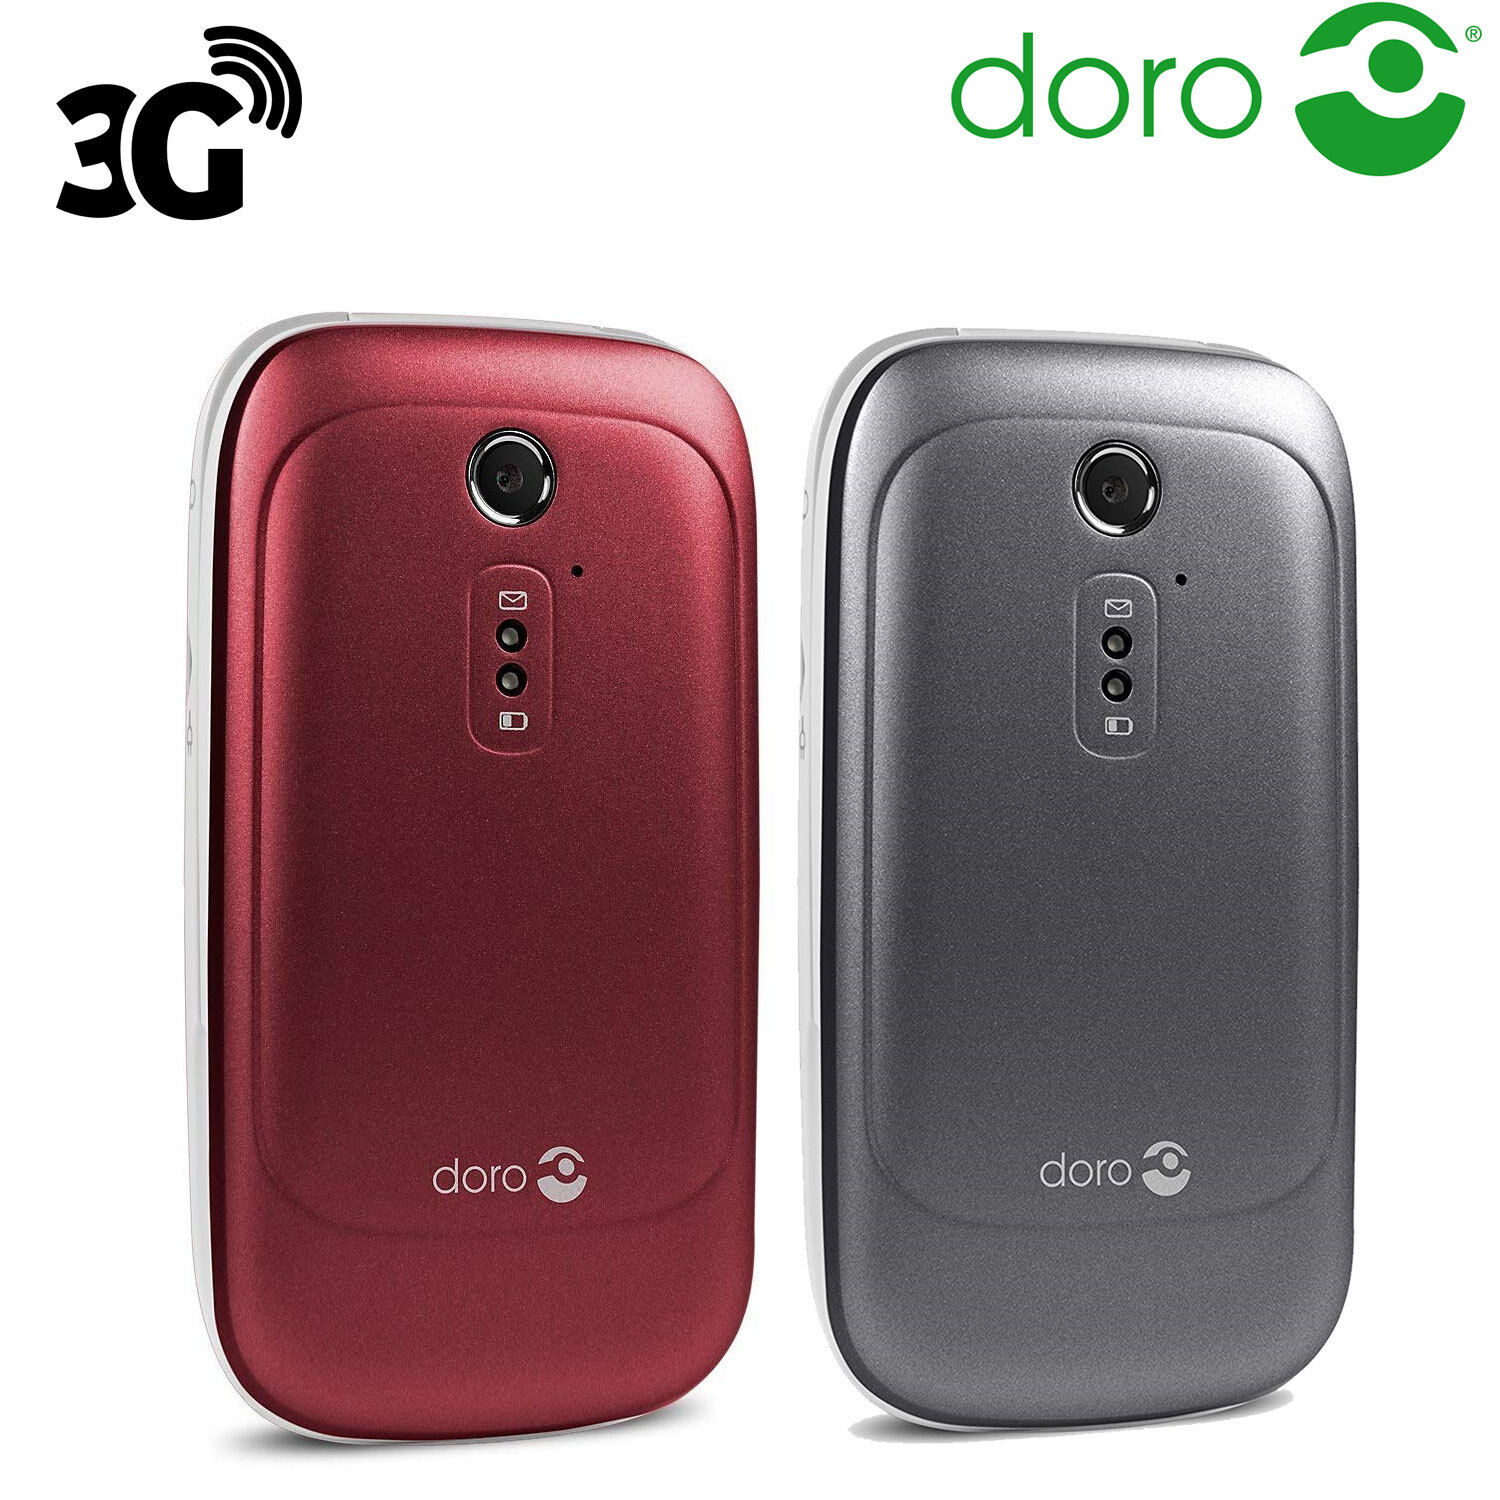 Android Phone - Doro 6520 Big Buttons Loud & Clear Sound Flip Mobile Phone Easy Use 3G Unlocked